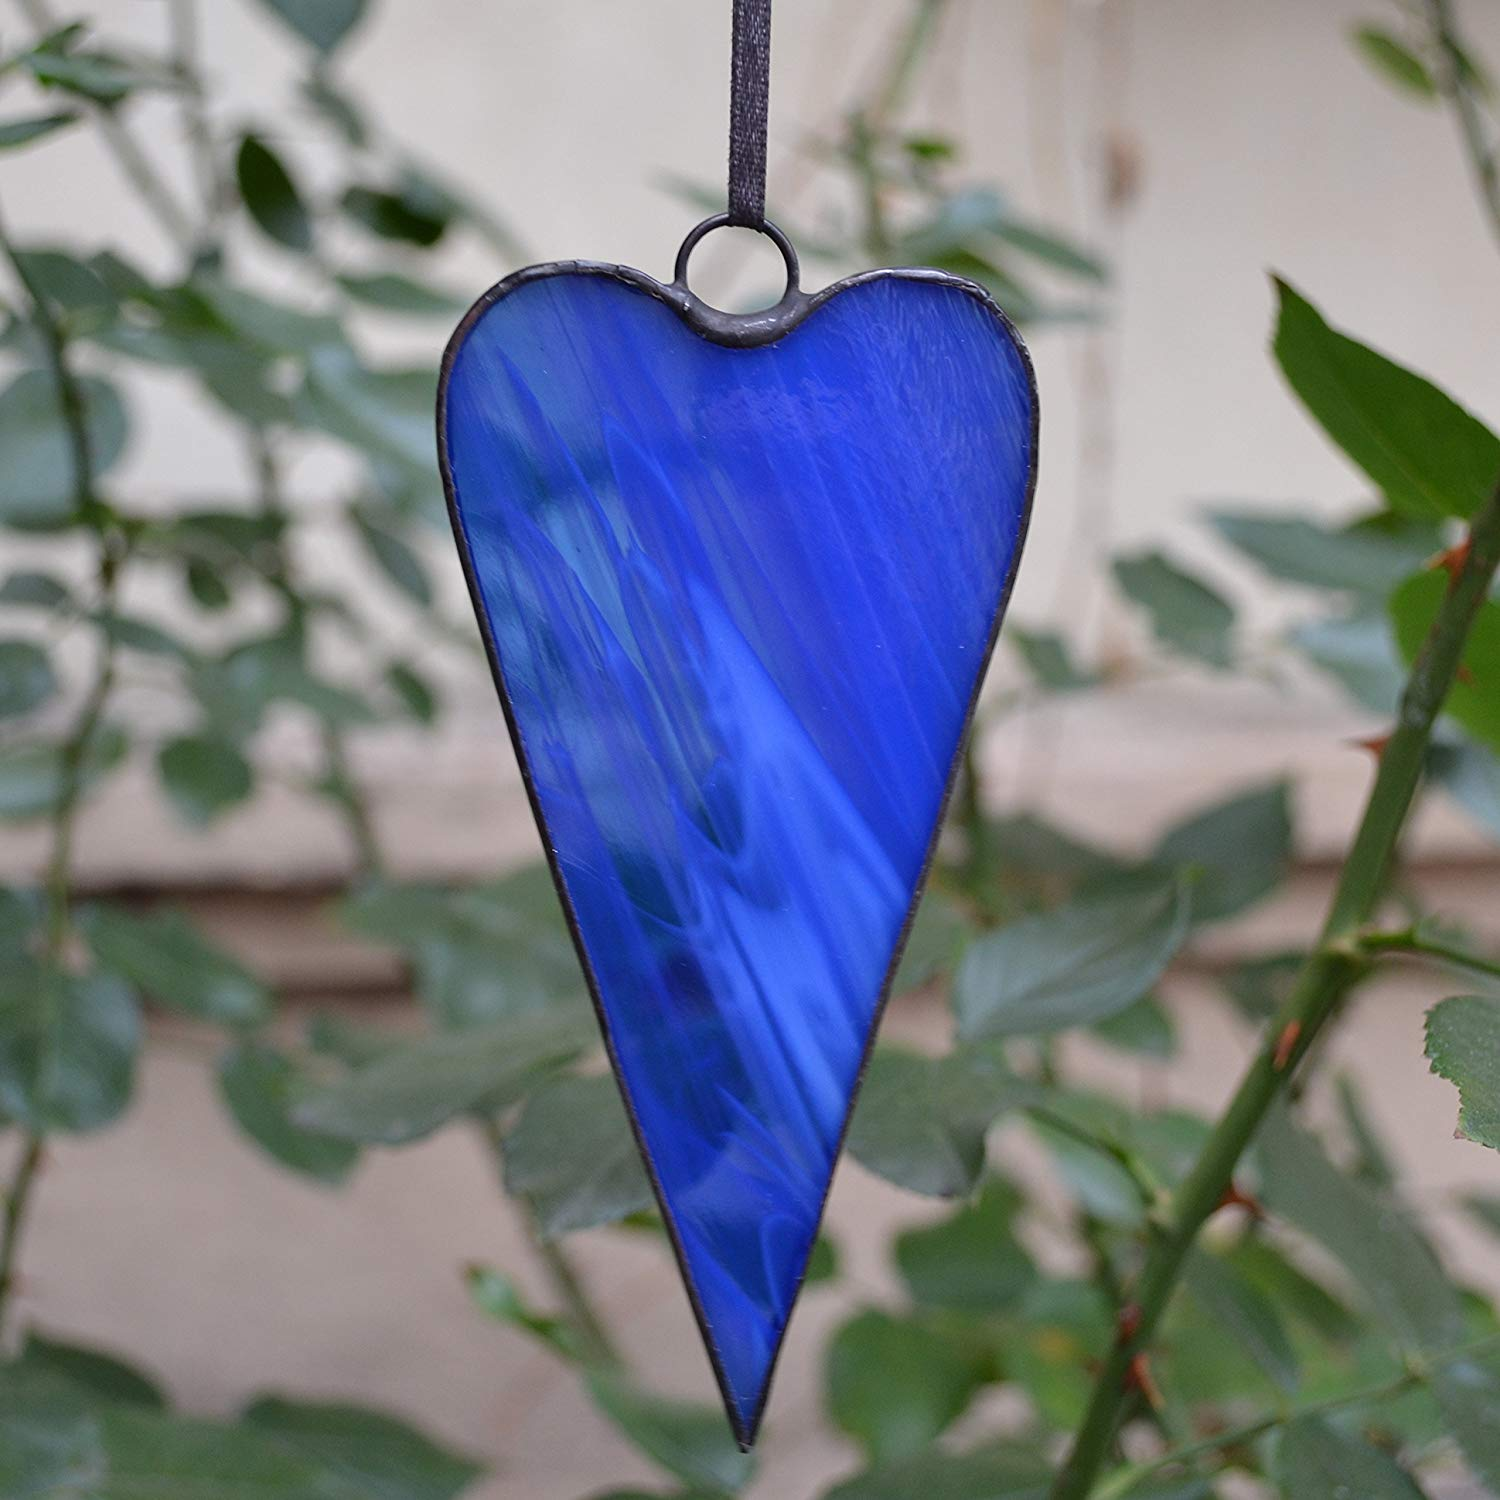 Whimsical tilda indigo blue heart ornament made of stained glass